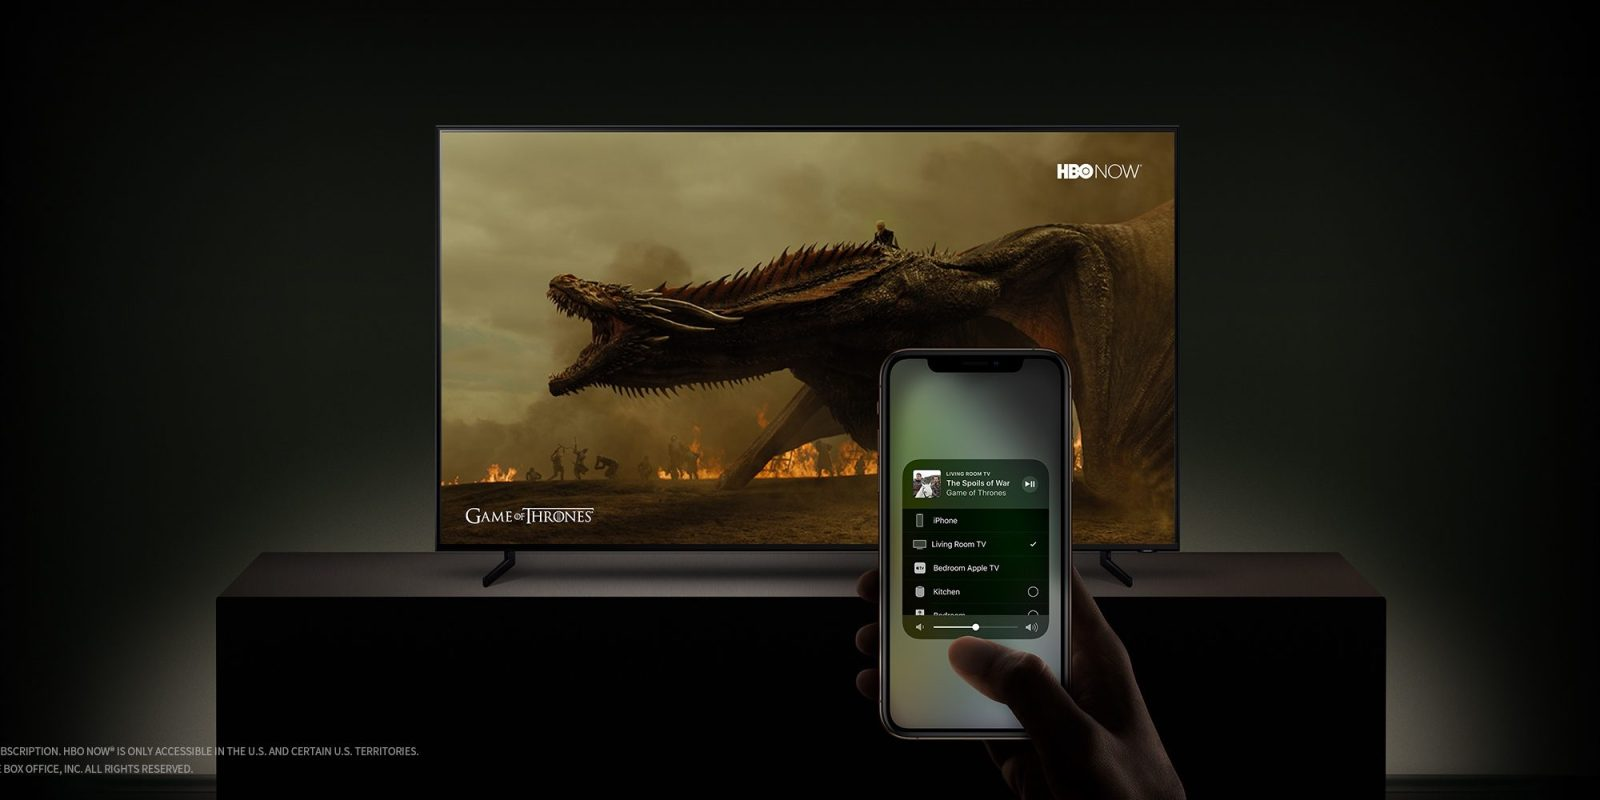 apple samsung tv1 - The AirPlay 2 news from CES has changed my classroom AV plans